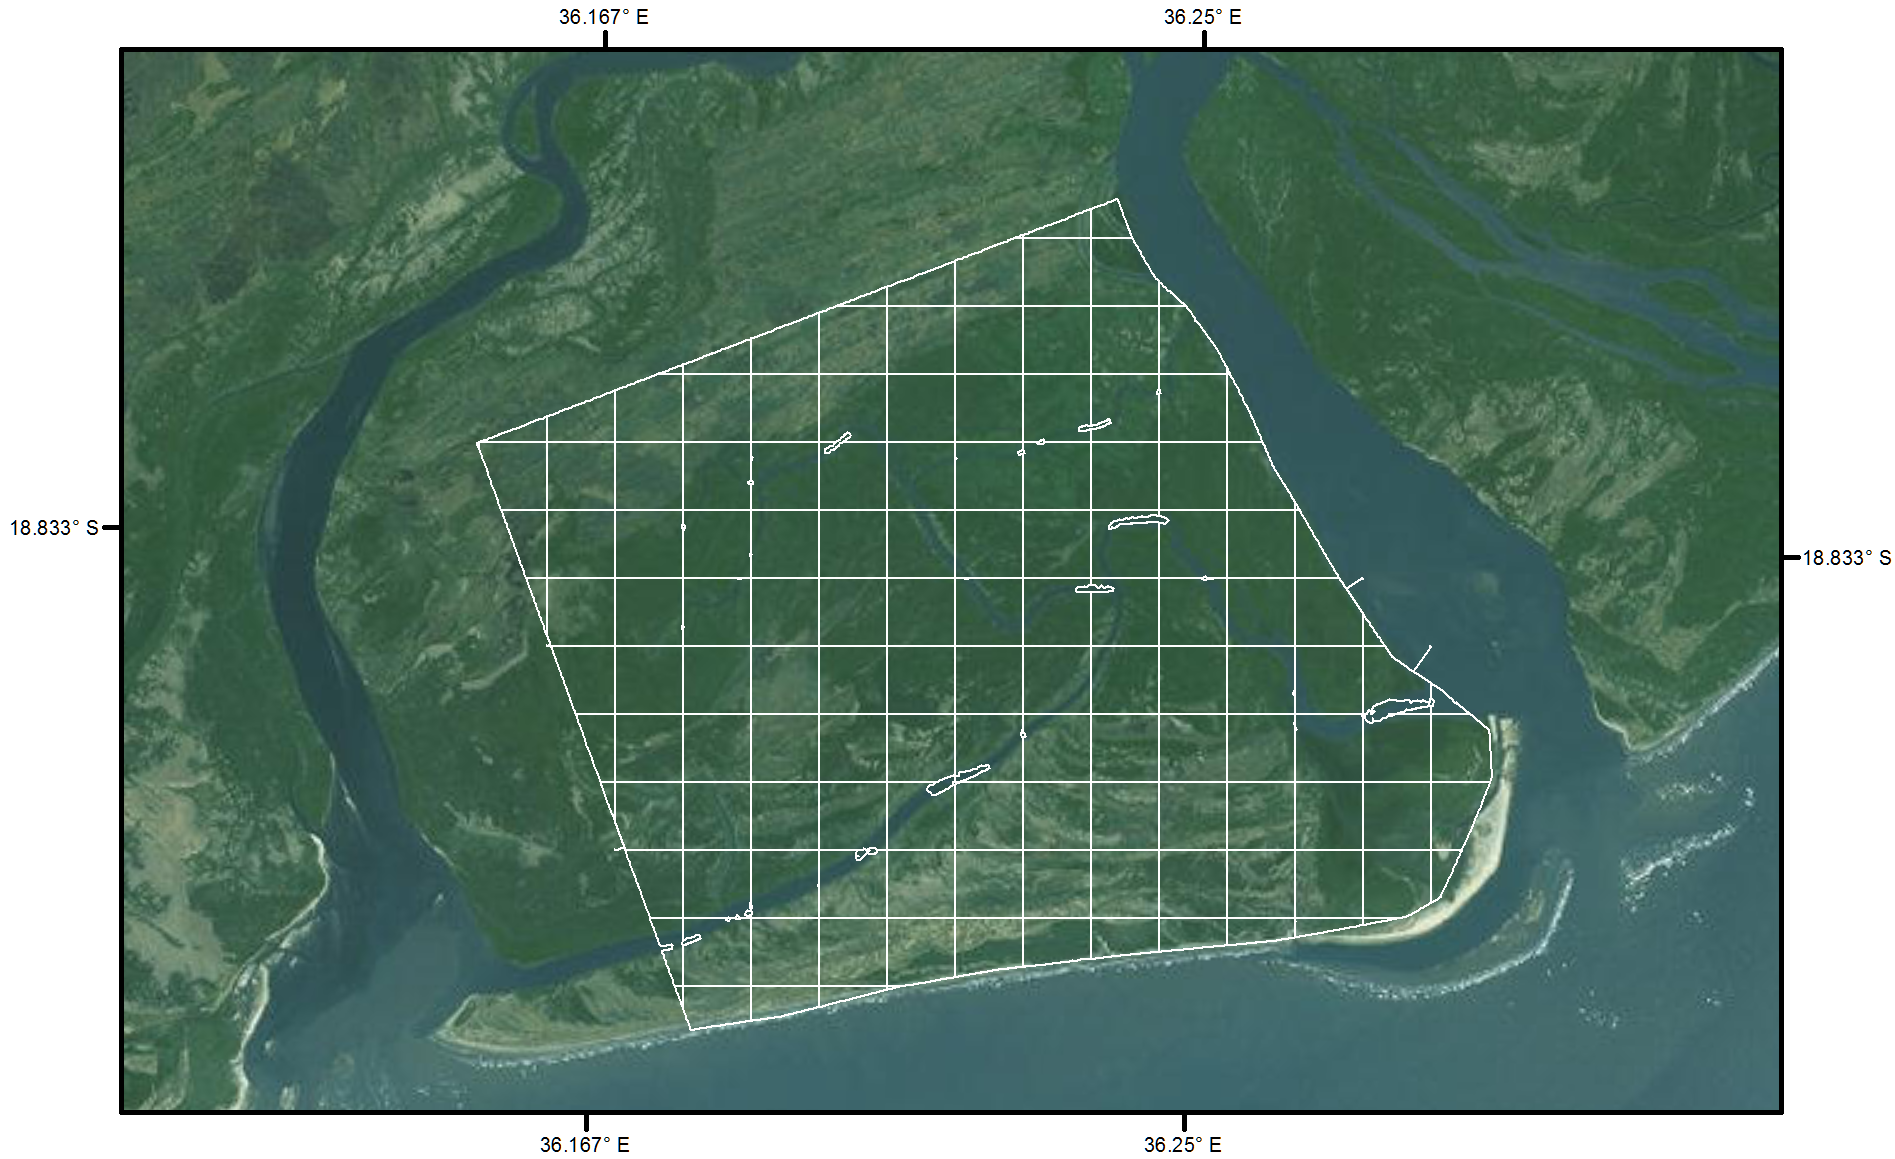 CMS: LiDAR Data for Mangrove Forests in the Zambezi River